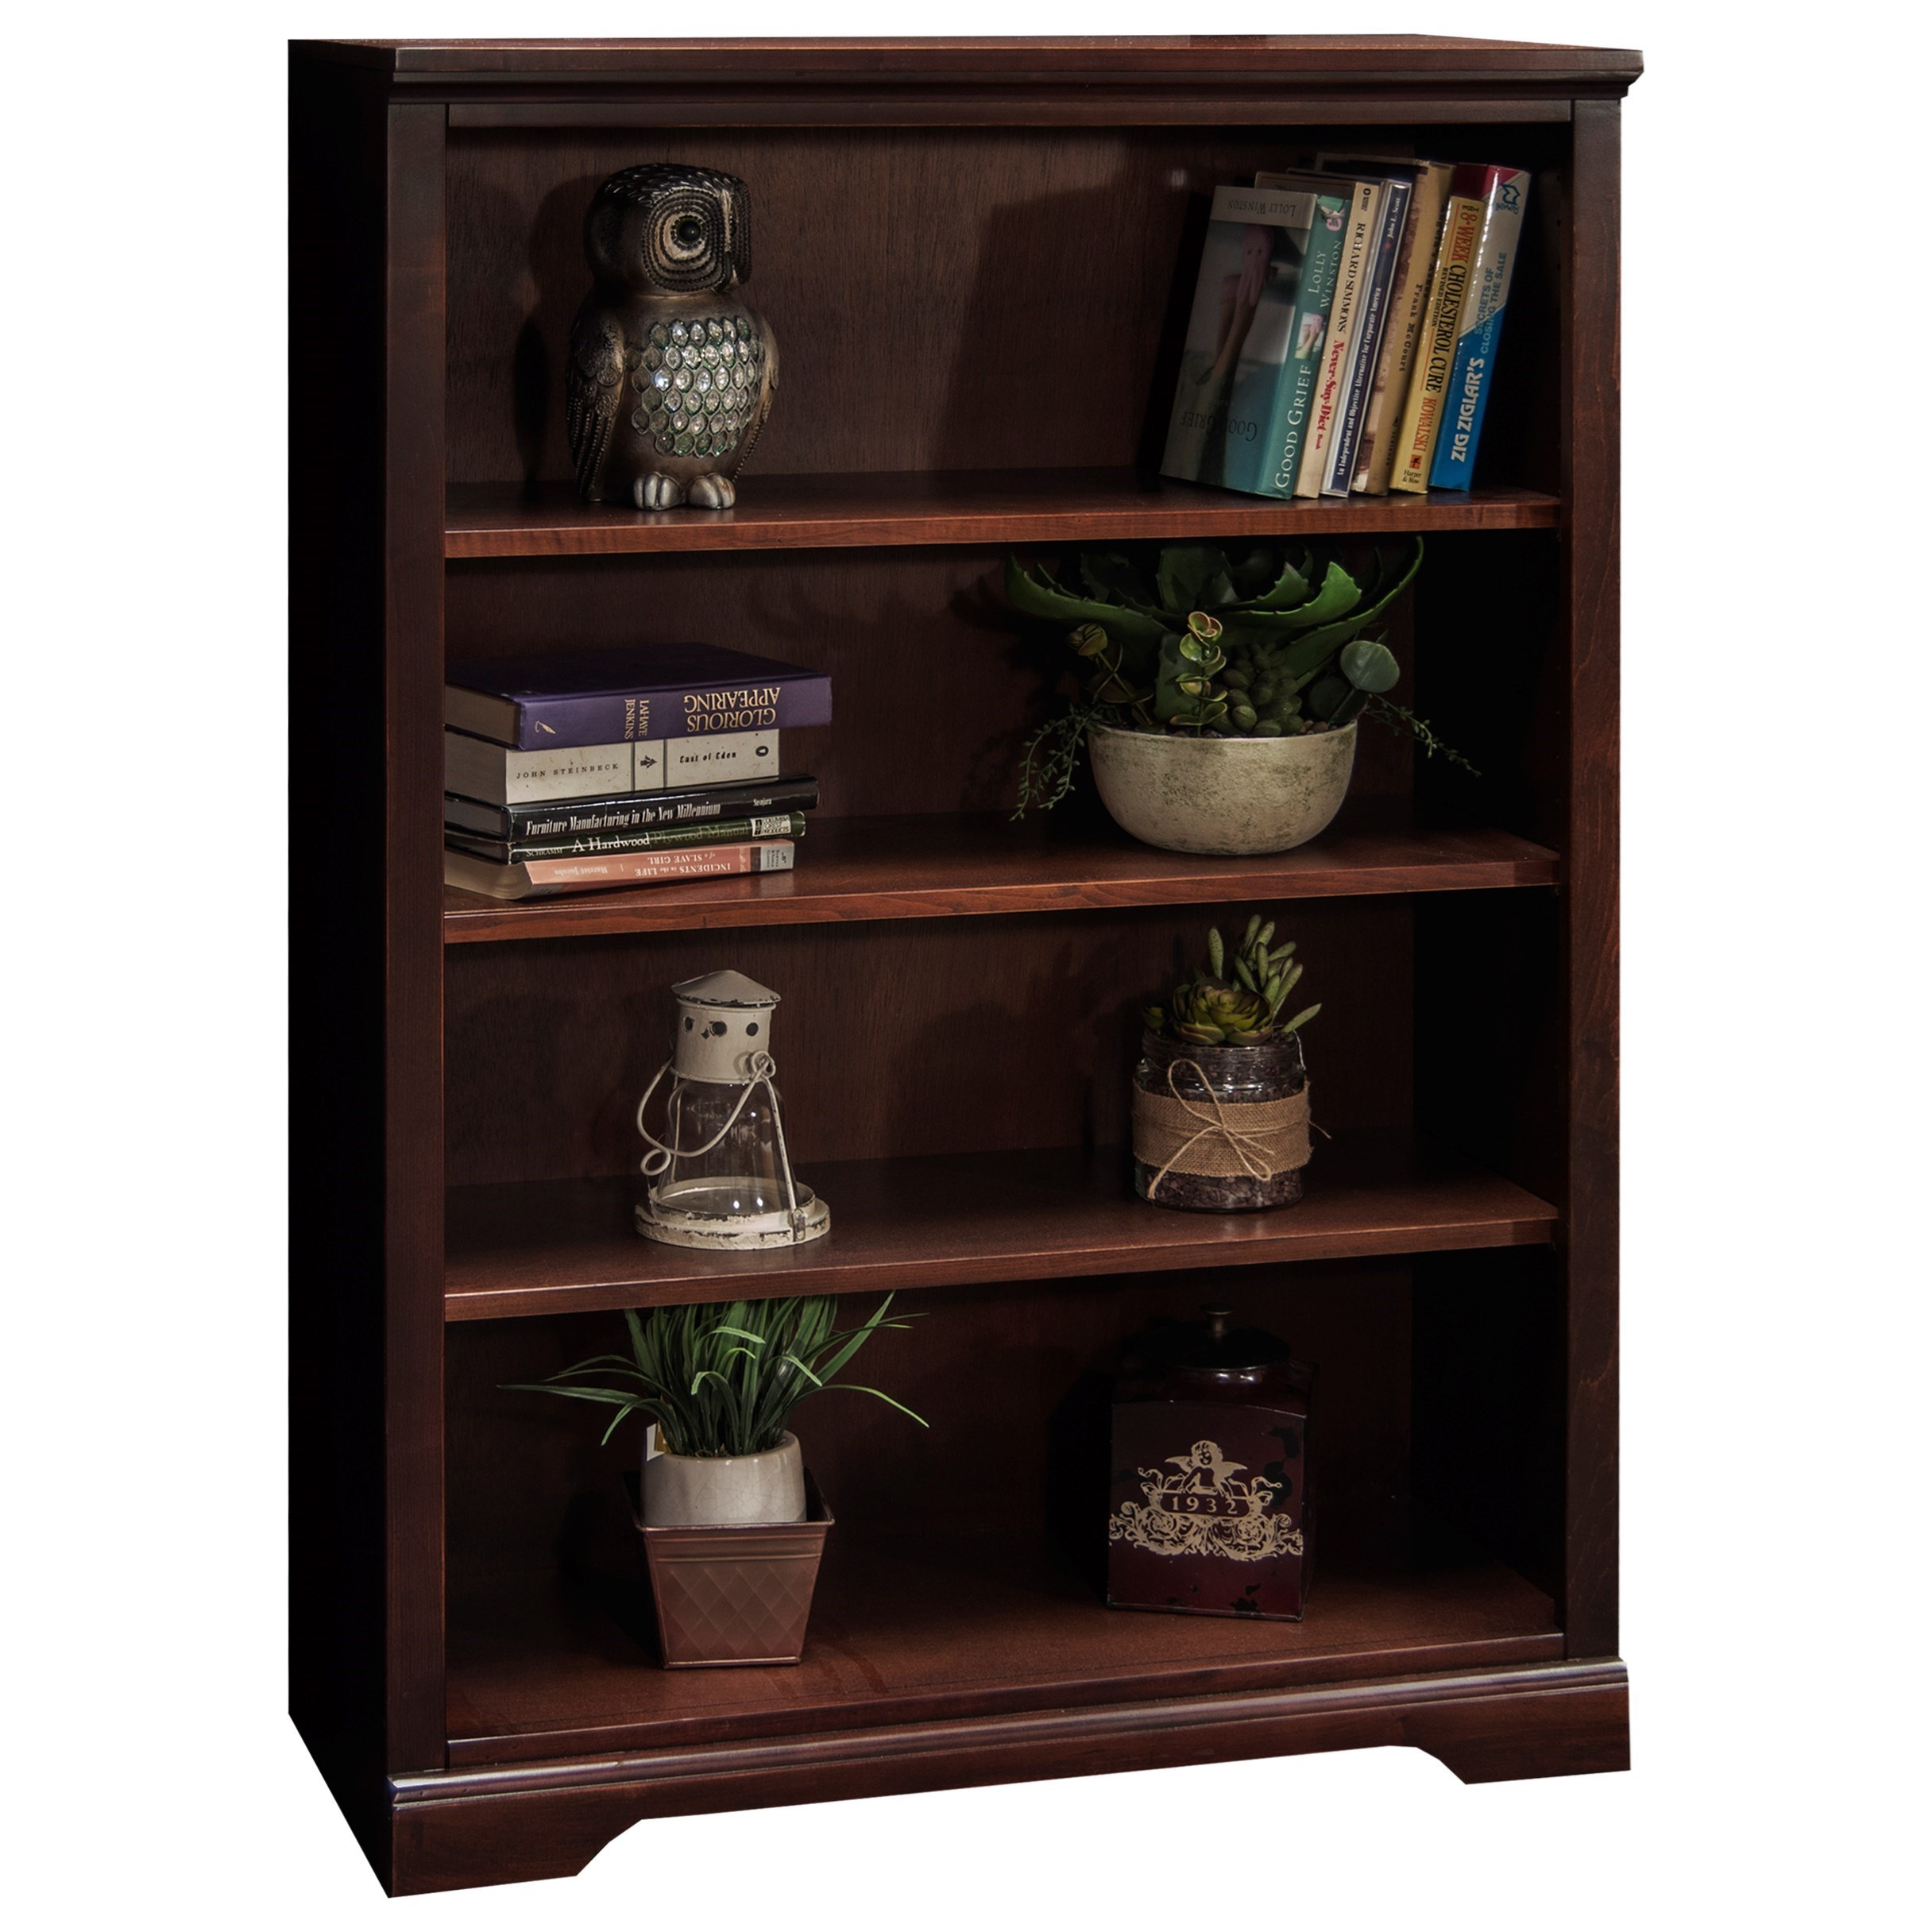 Legends Furniture Brentwood Bw6848 Dnc Casual 48 Bookcase For Home Organization Dunk Bright